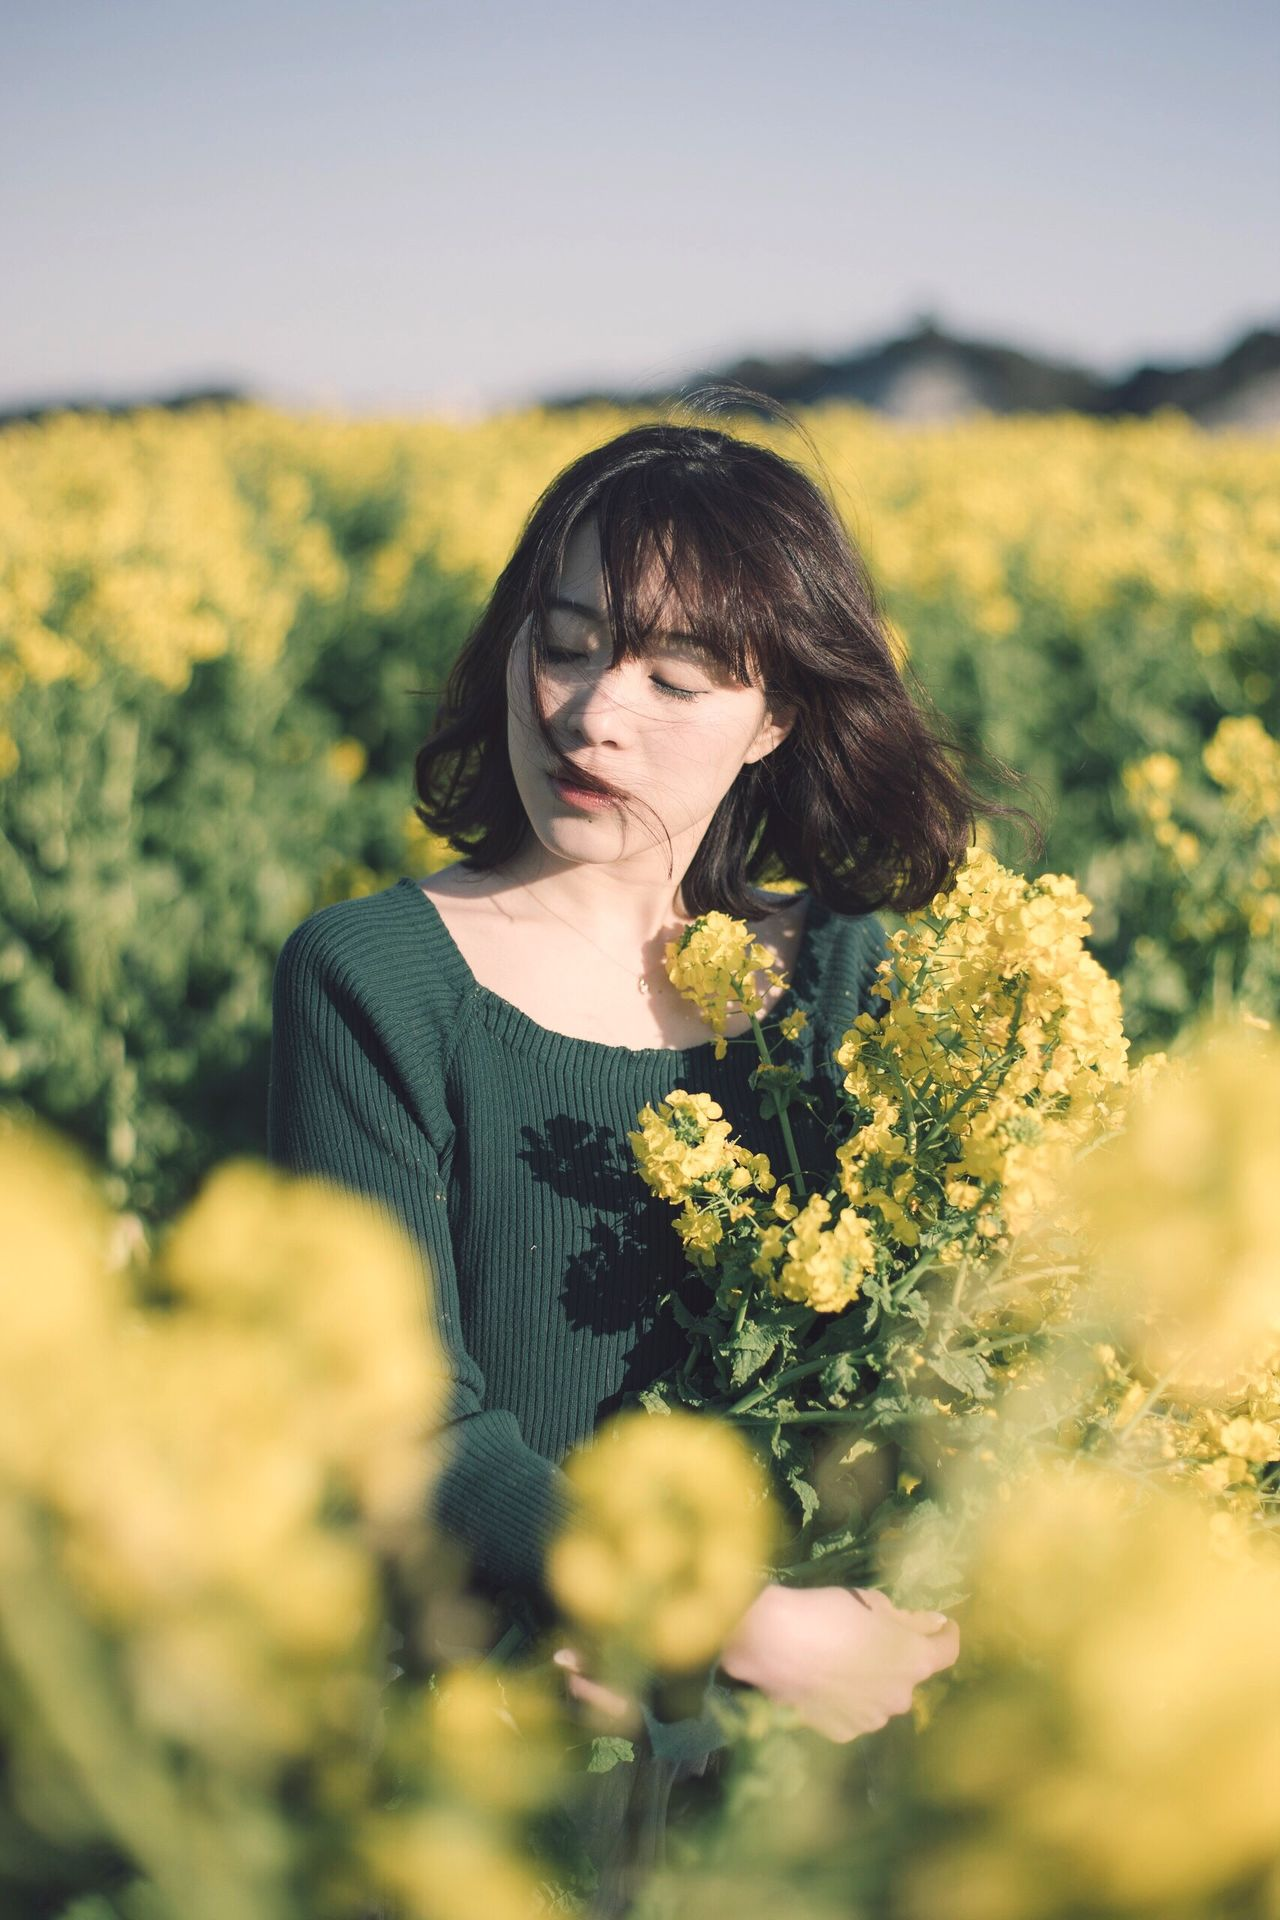 Flower Field Beauty Agriculture Adult Lifestyles Plant Only Women Nature One Person One Woman Only Yellow Portrait Beauty In Nature Japan Nature Women Adults Only Outdoors People Freshness Human Hand Human Body Part